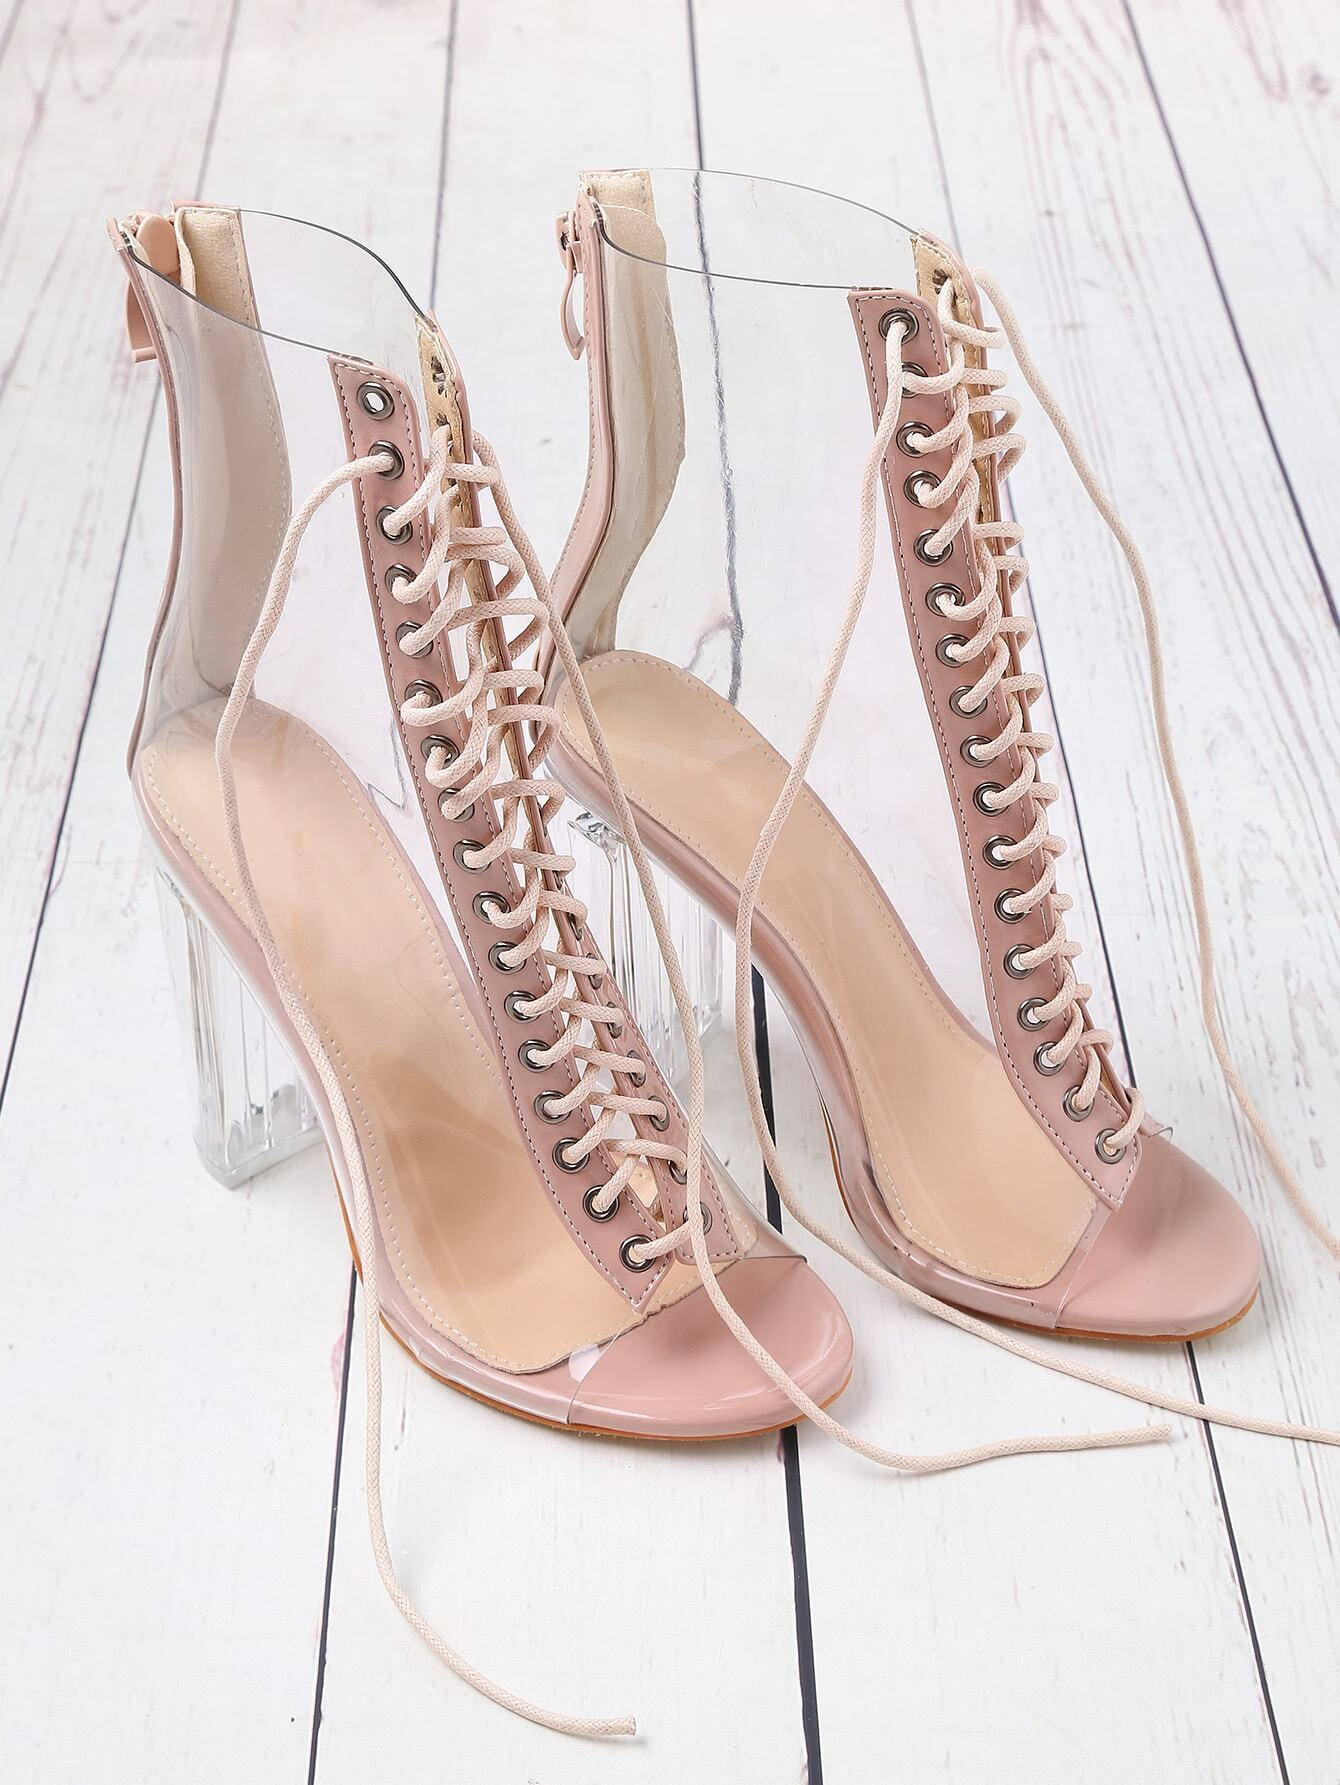 Lace Up Zipper Back Transparent Heels shoes170503817